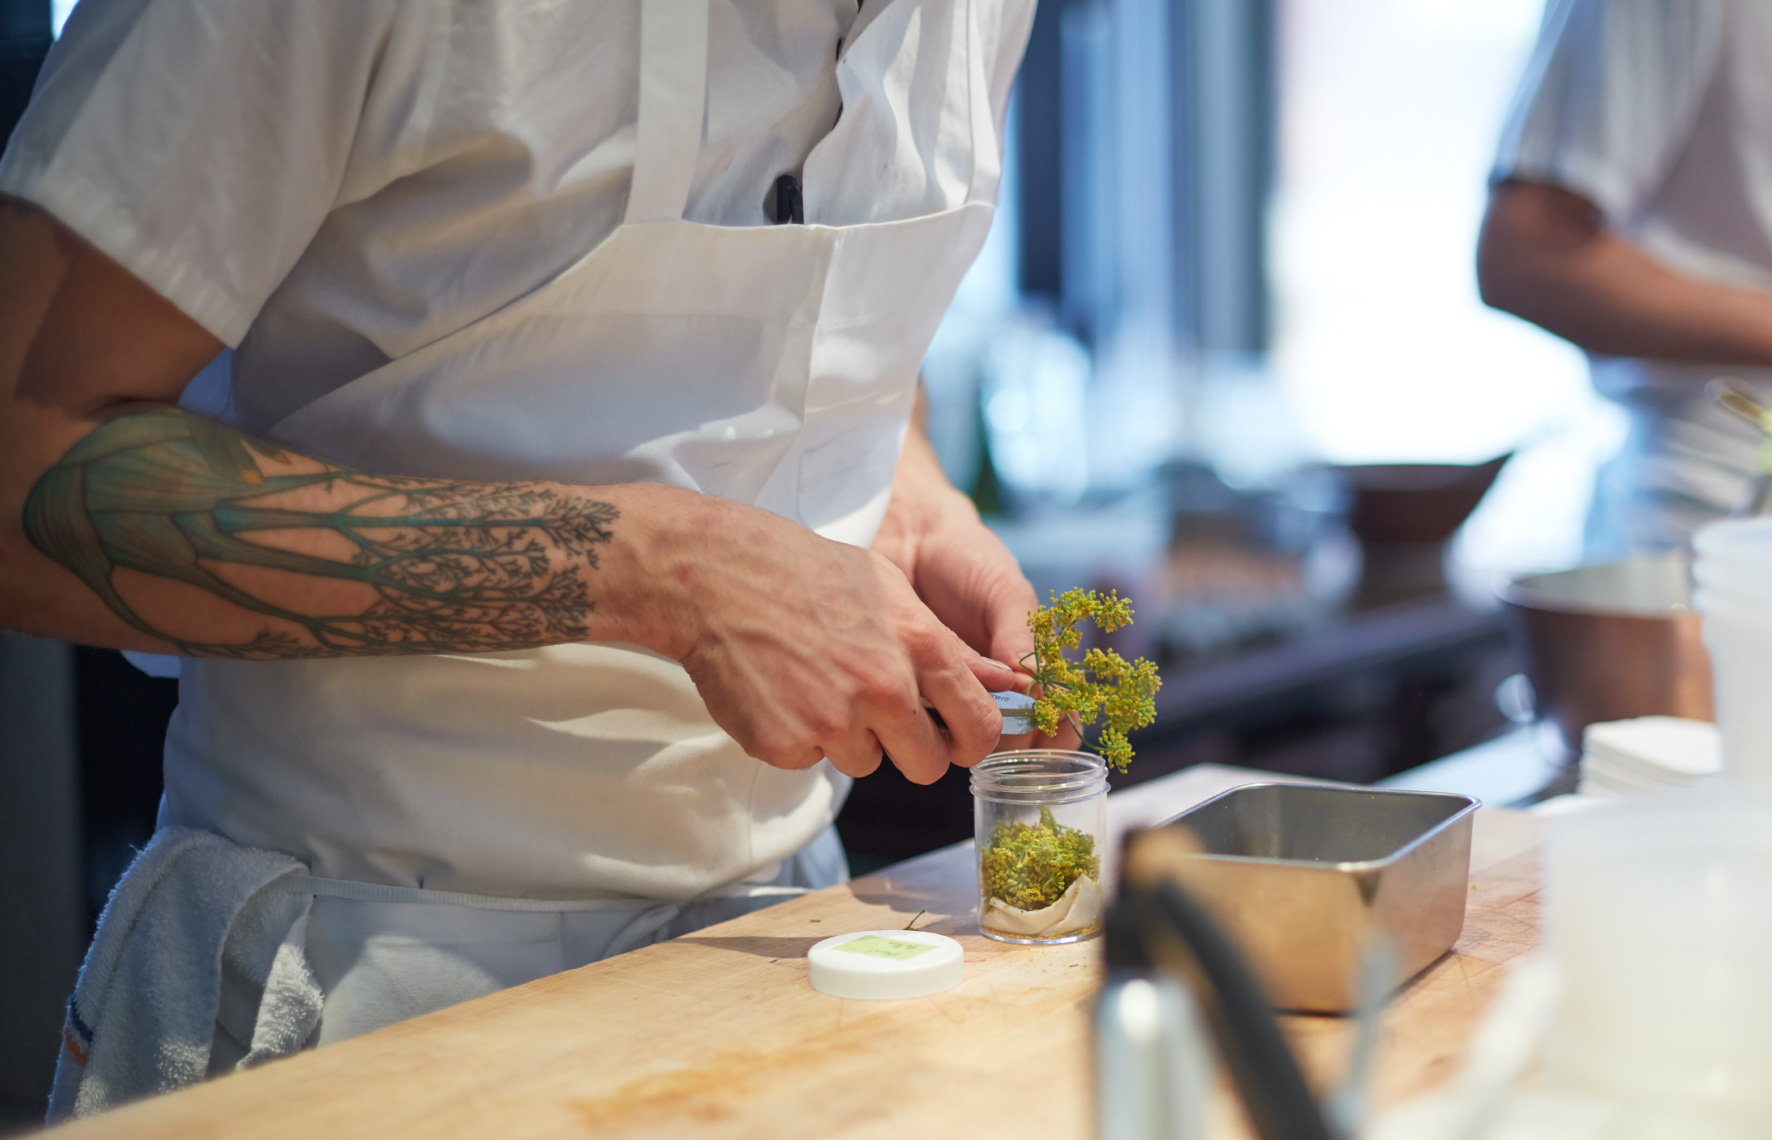 Chef slicing food at prep table in restaurant kitchen